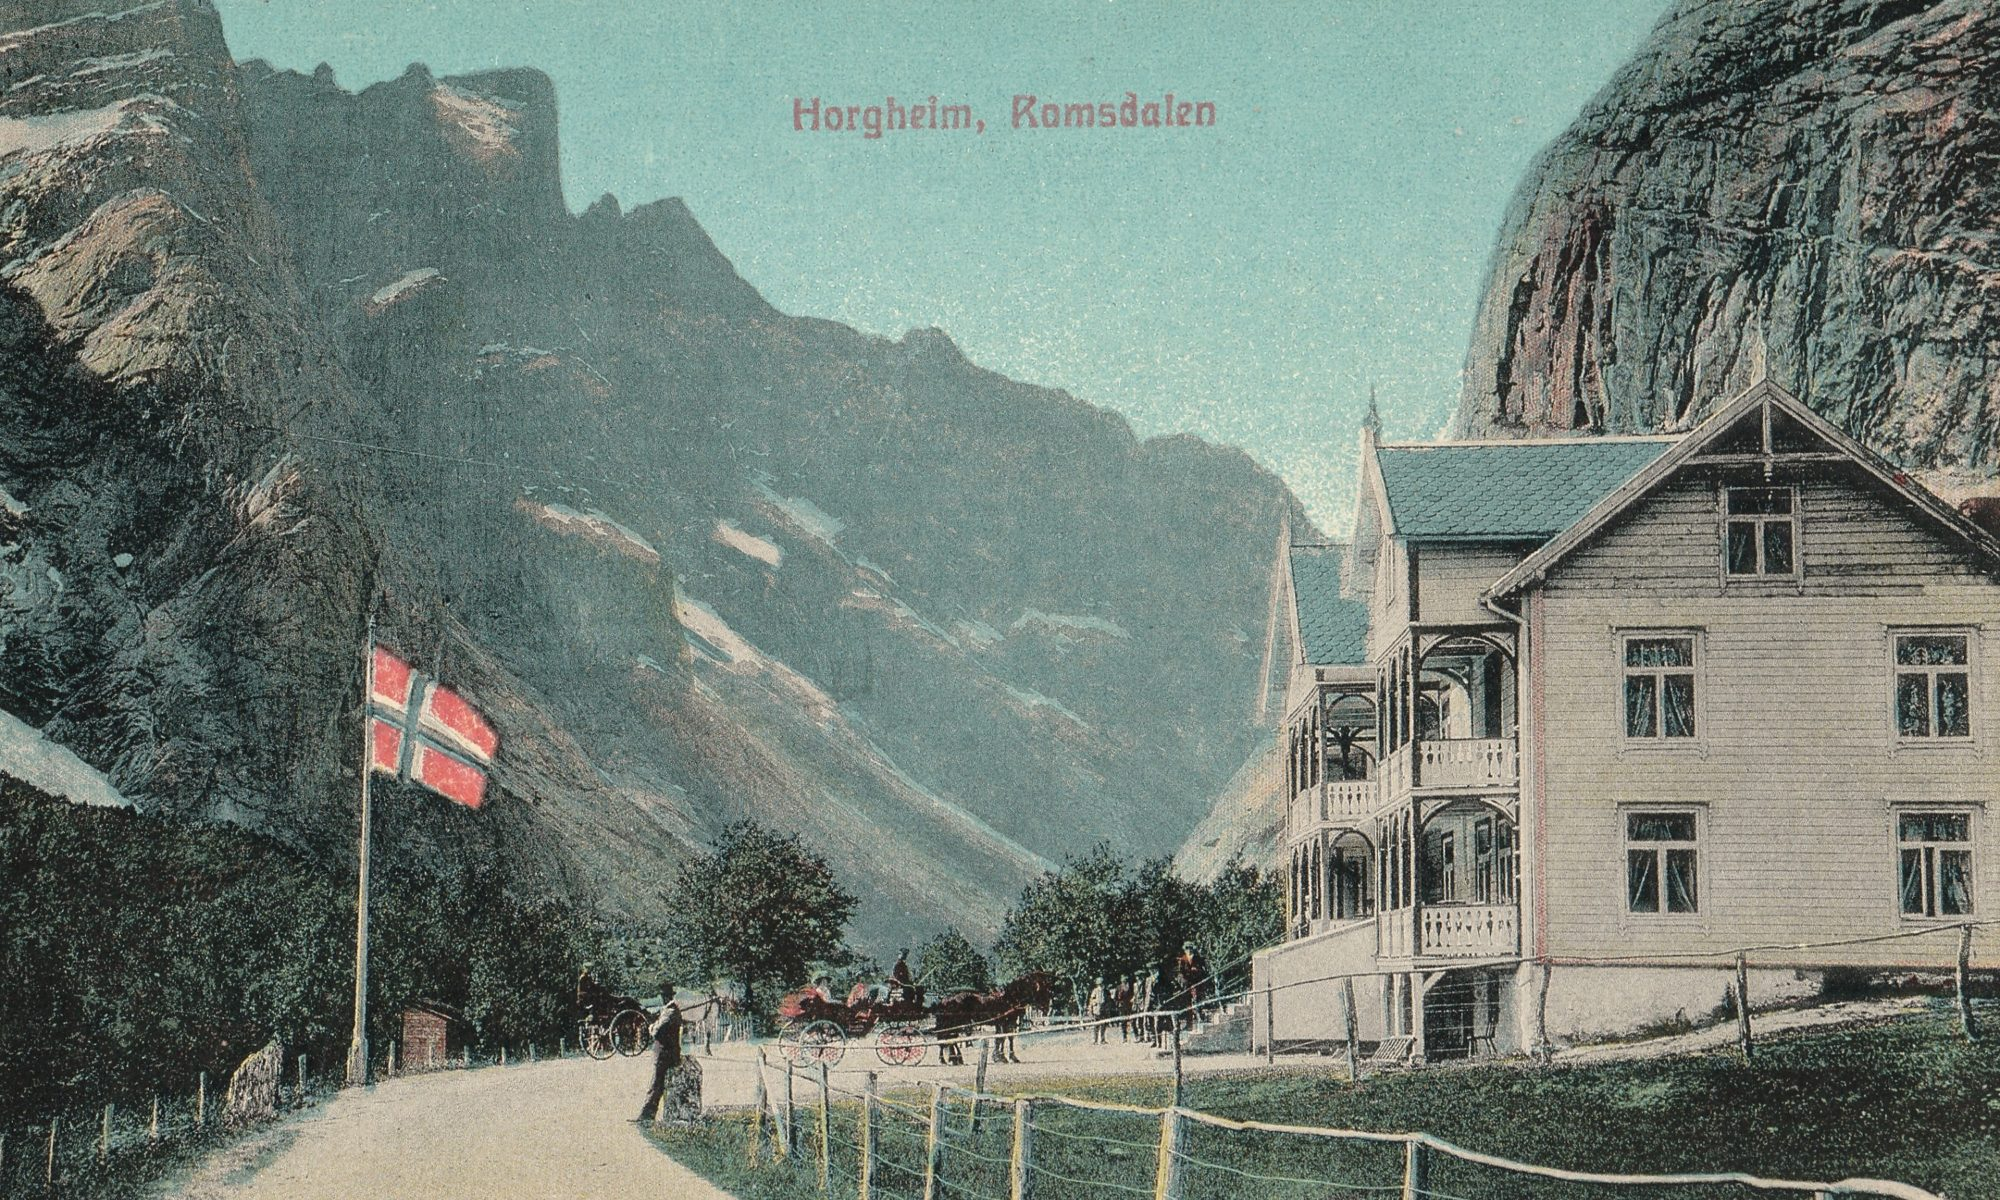 FJORDS NORWAY - Old Photos from the Romsdalsfjord